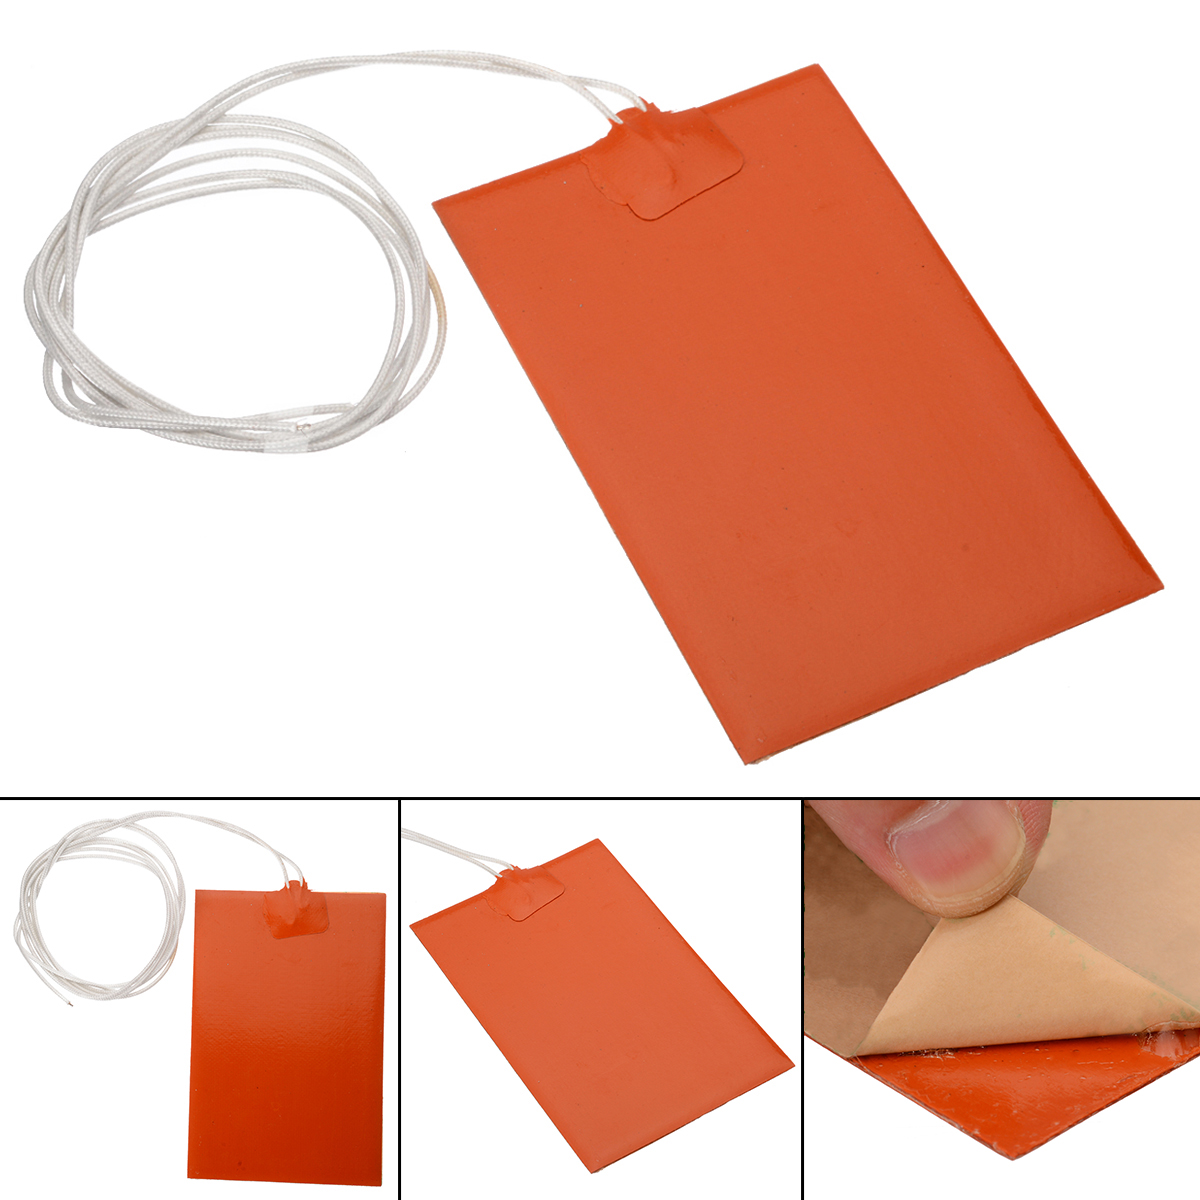 10x15cm 300W Silicone Heated Bed Engine Oil Tank Heating Mat Universal Rubber Heating Mat Warming Accessories